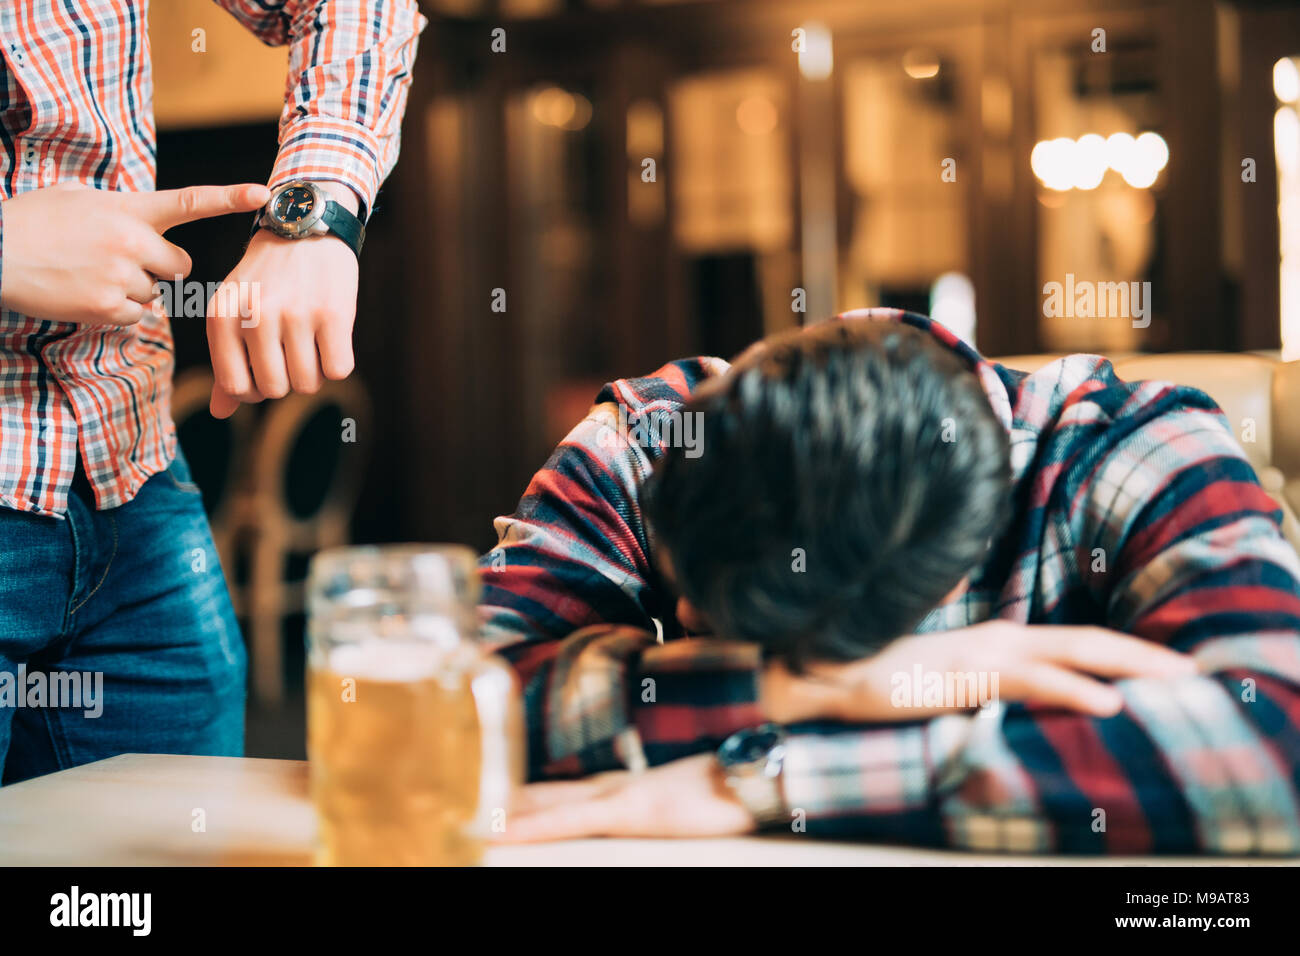 Young man in casual clothes is sleeping near the mug of beer on a table in pub, another man is waking him up. - Stock Image